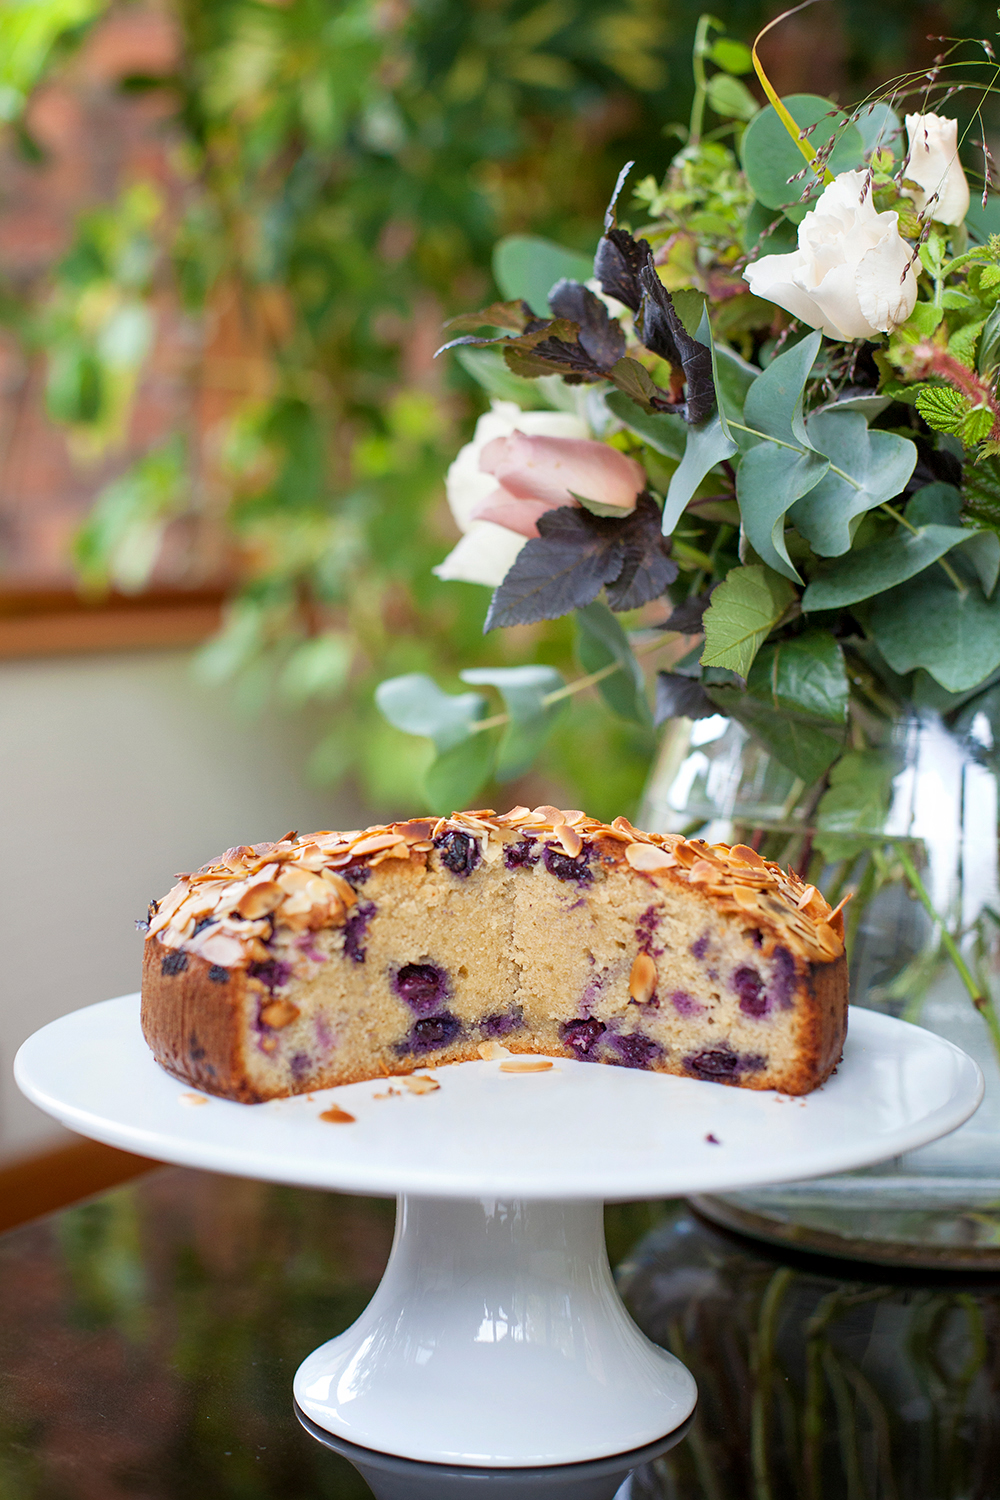 blueberry cake gluten free recipe.jpg